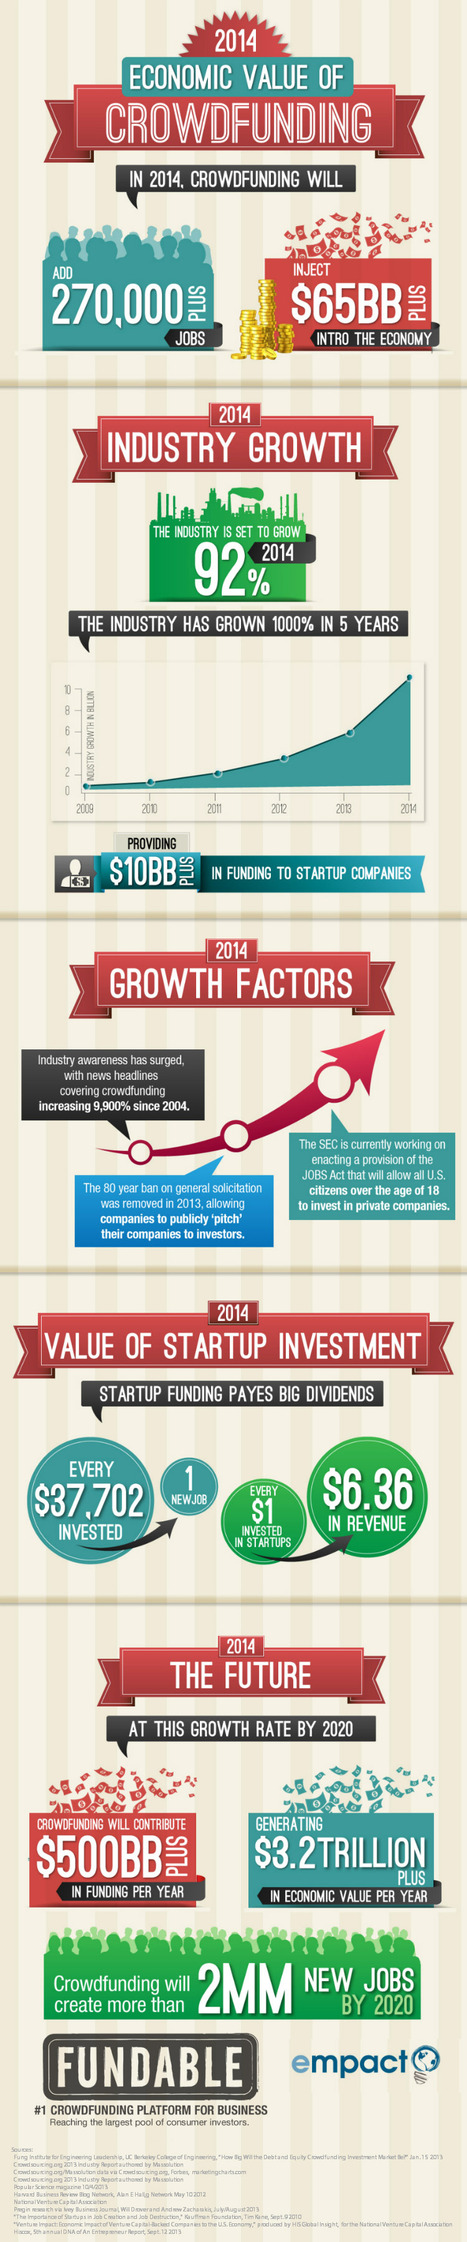 INFOGRAPHIC: Crowd Funding 2014 | Cloud Central | Scoop.it